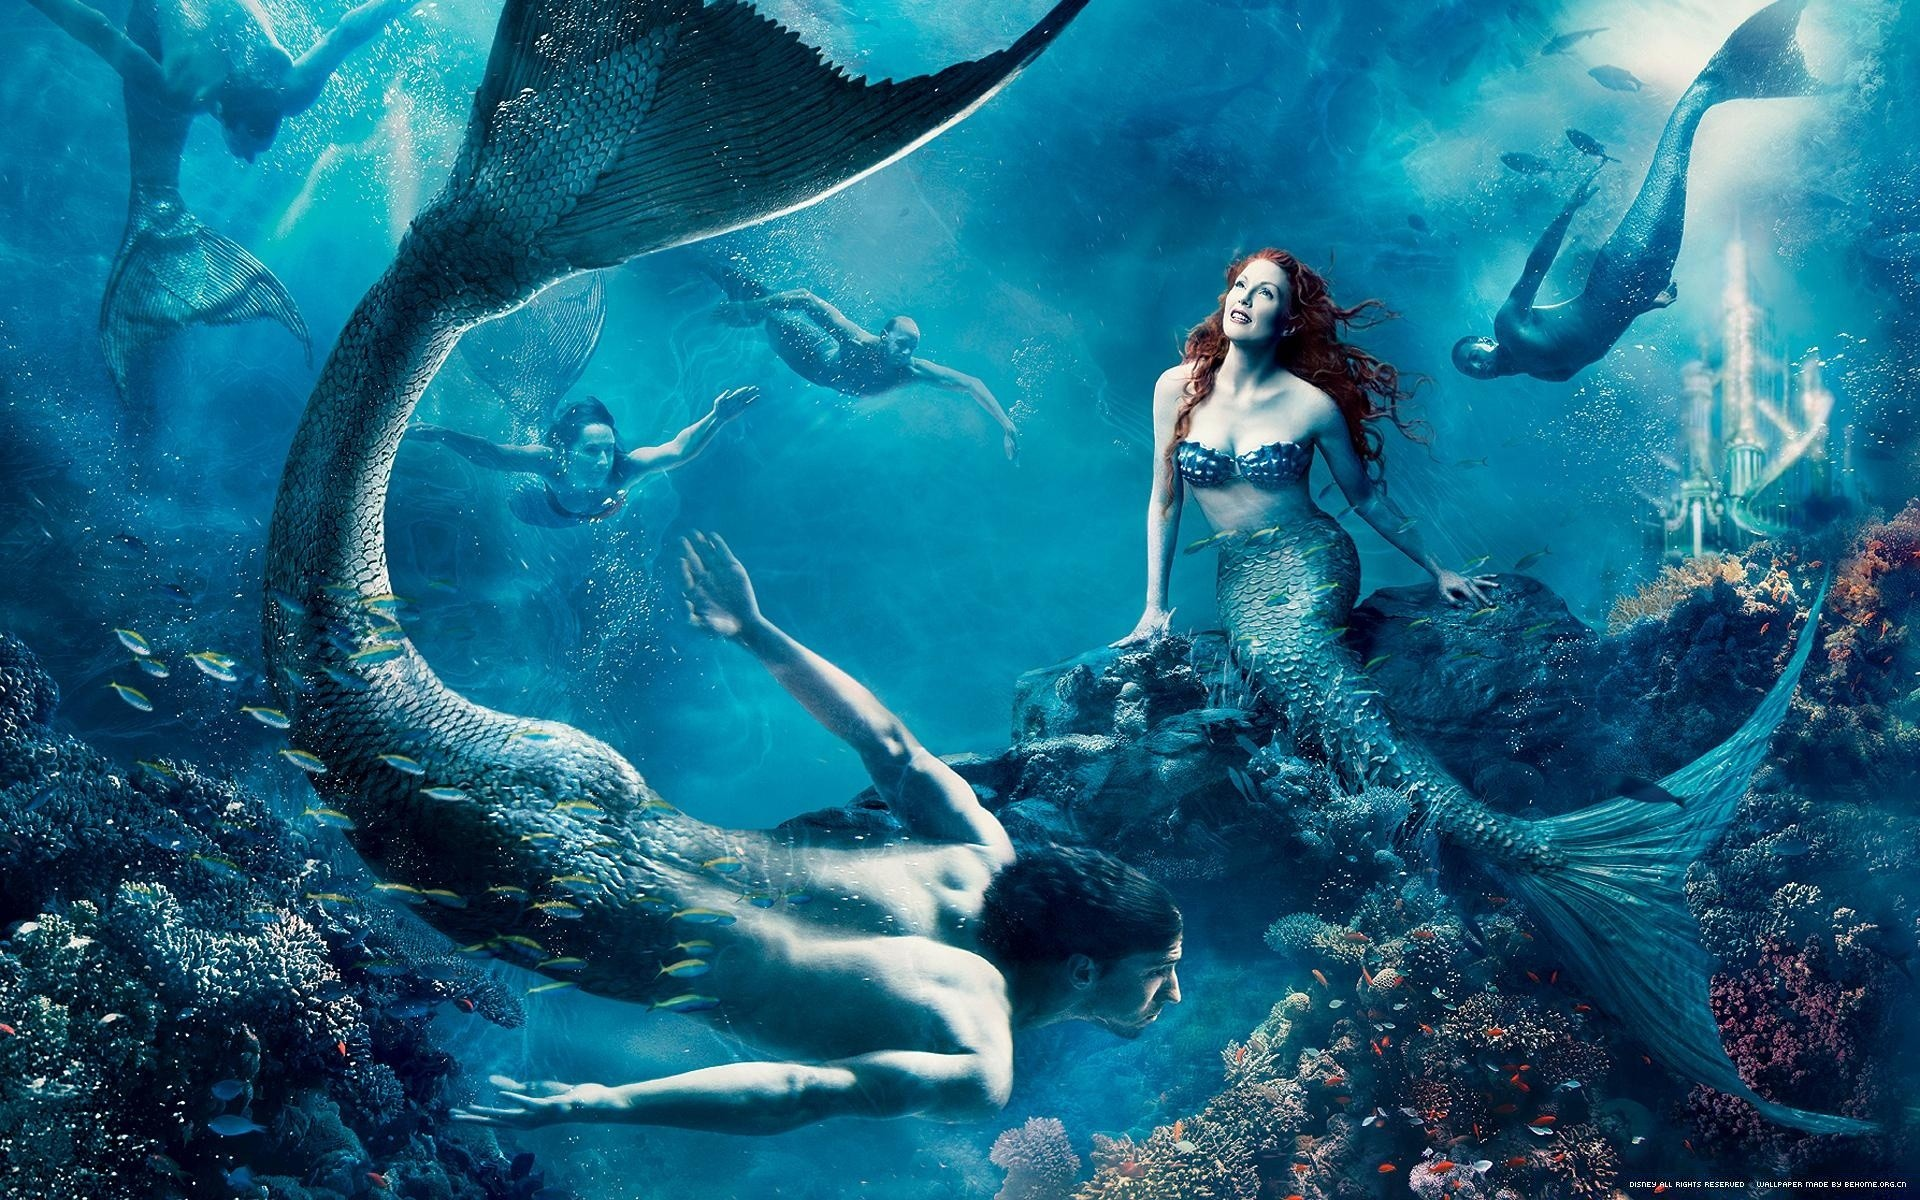 Mermaid role playing games online